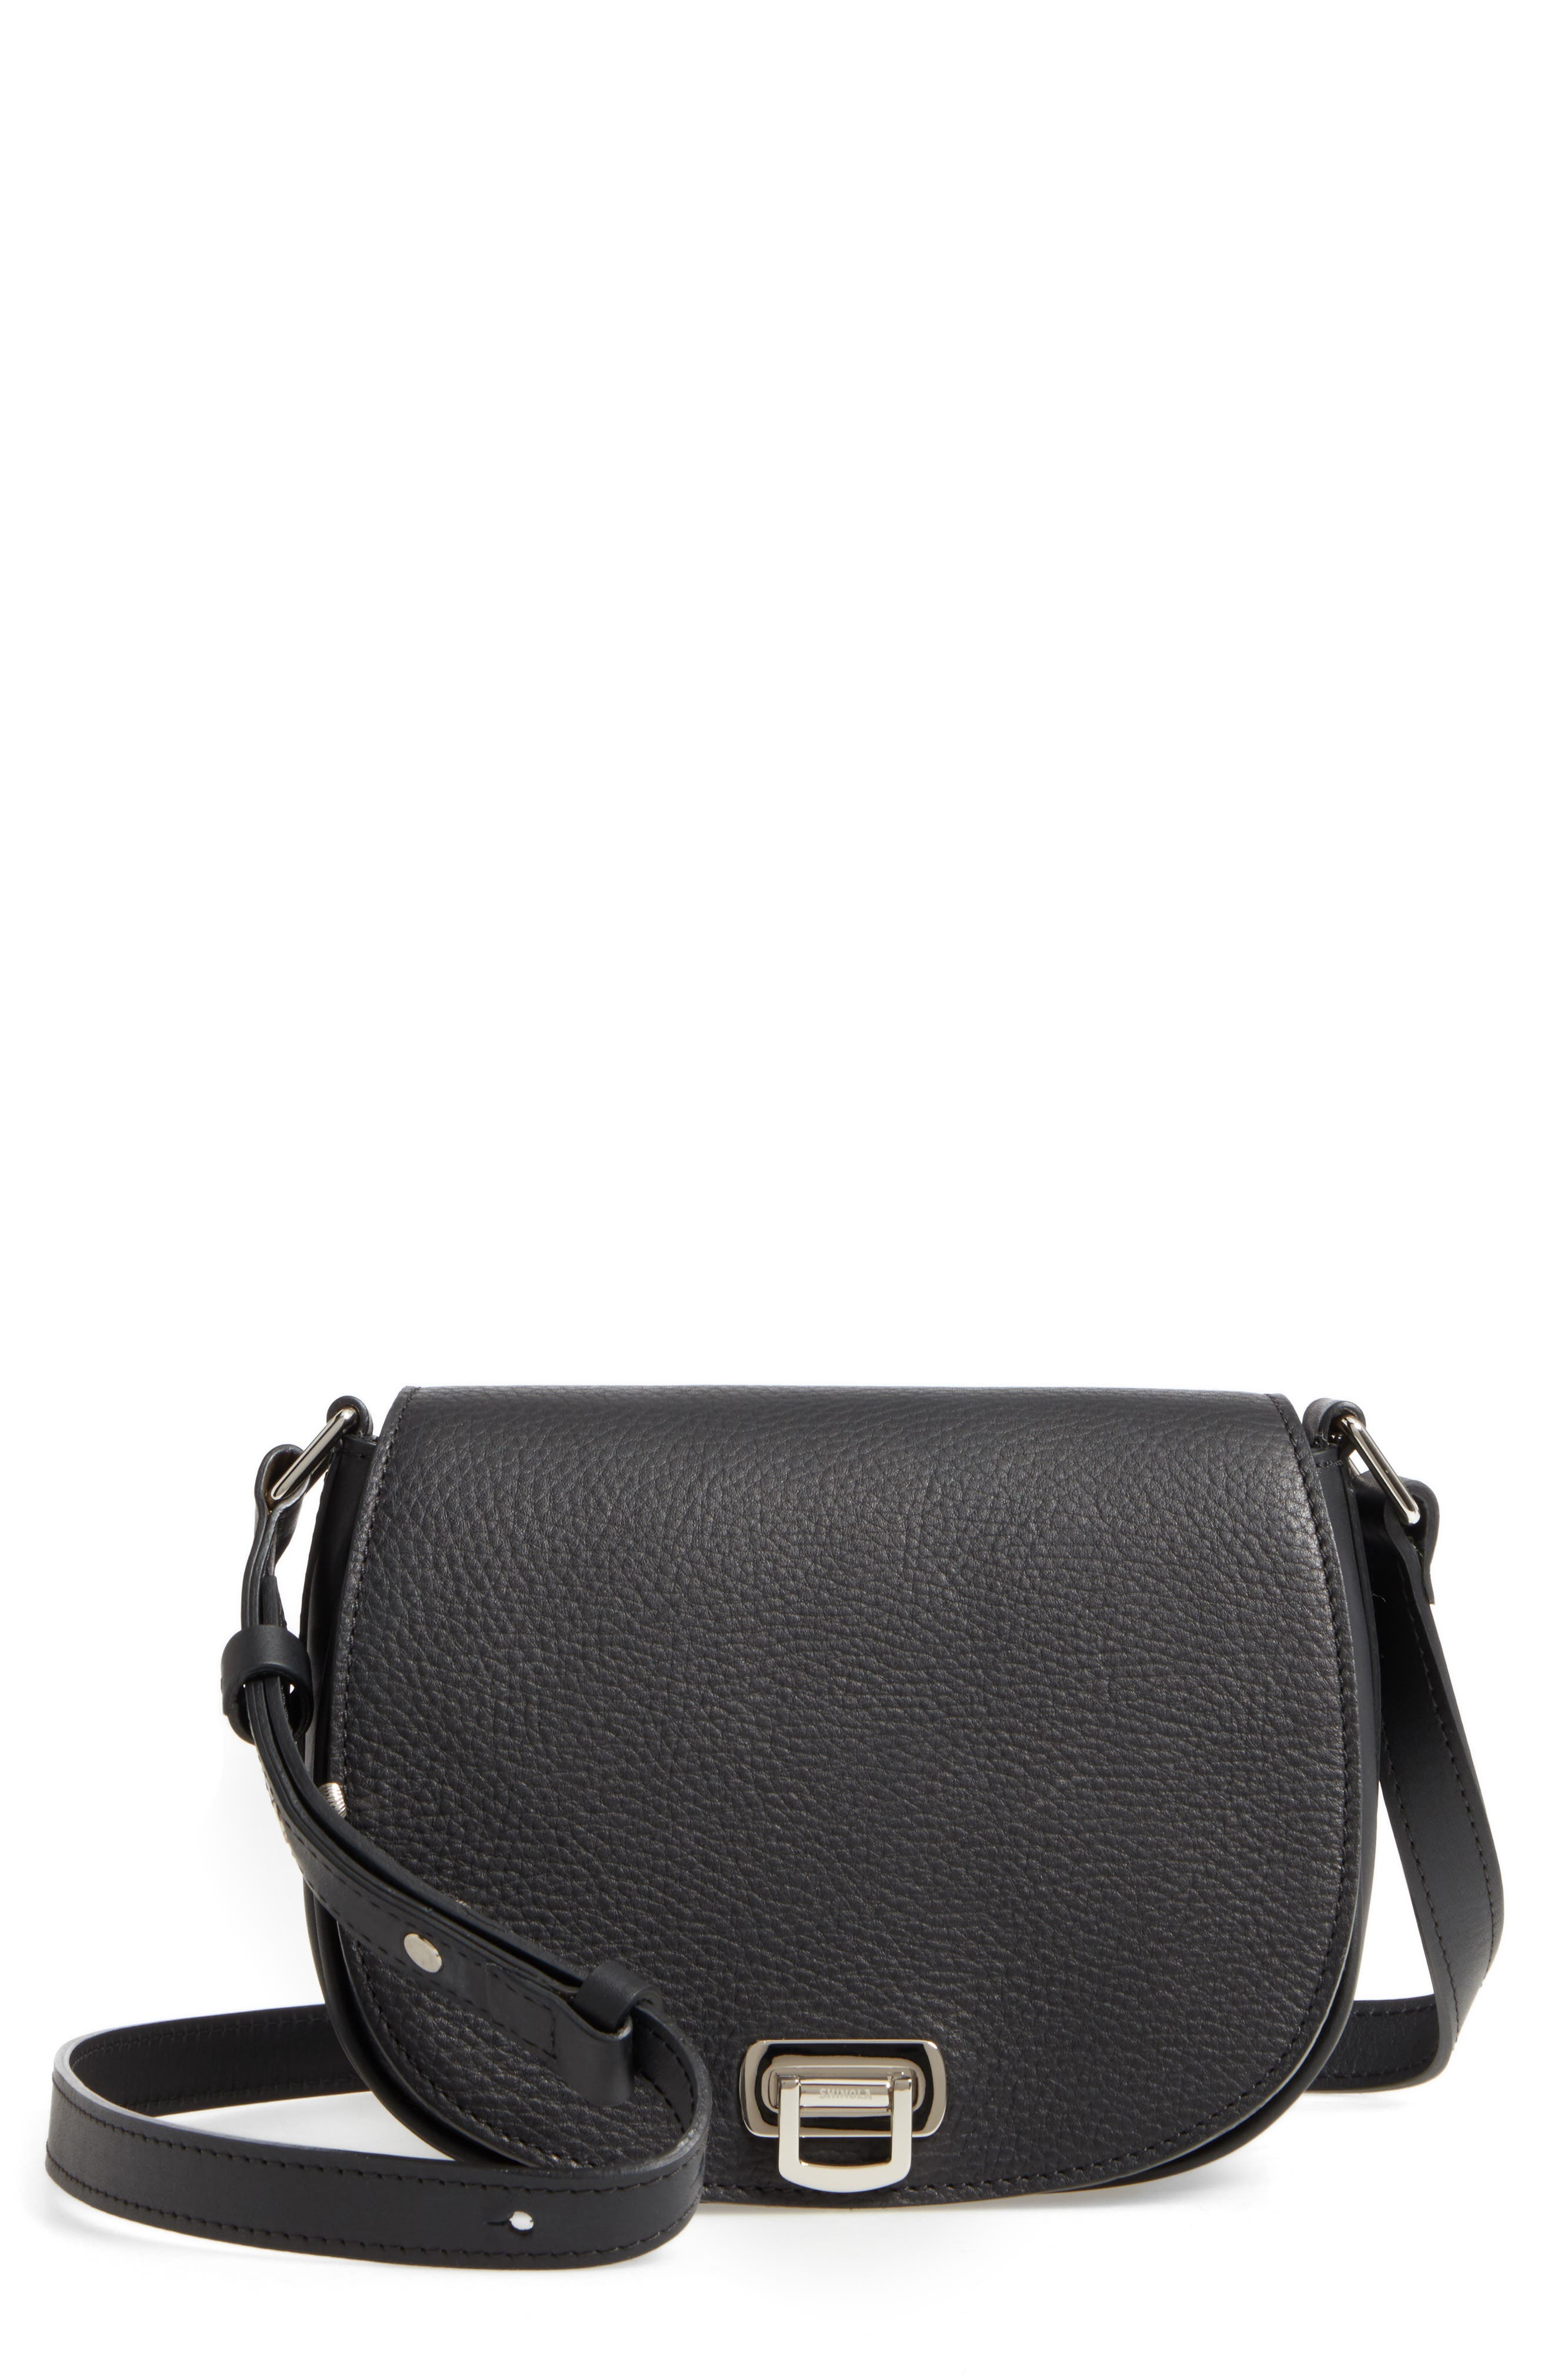 Alternate Image 1 Selected - Shinola Calfskin Leather Shoulder Bag